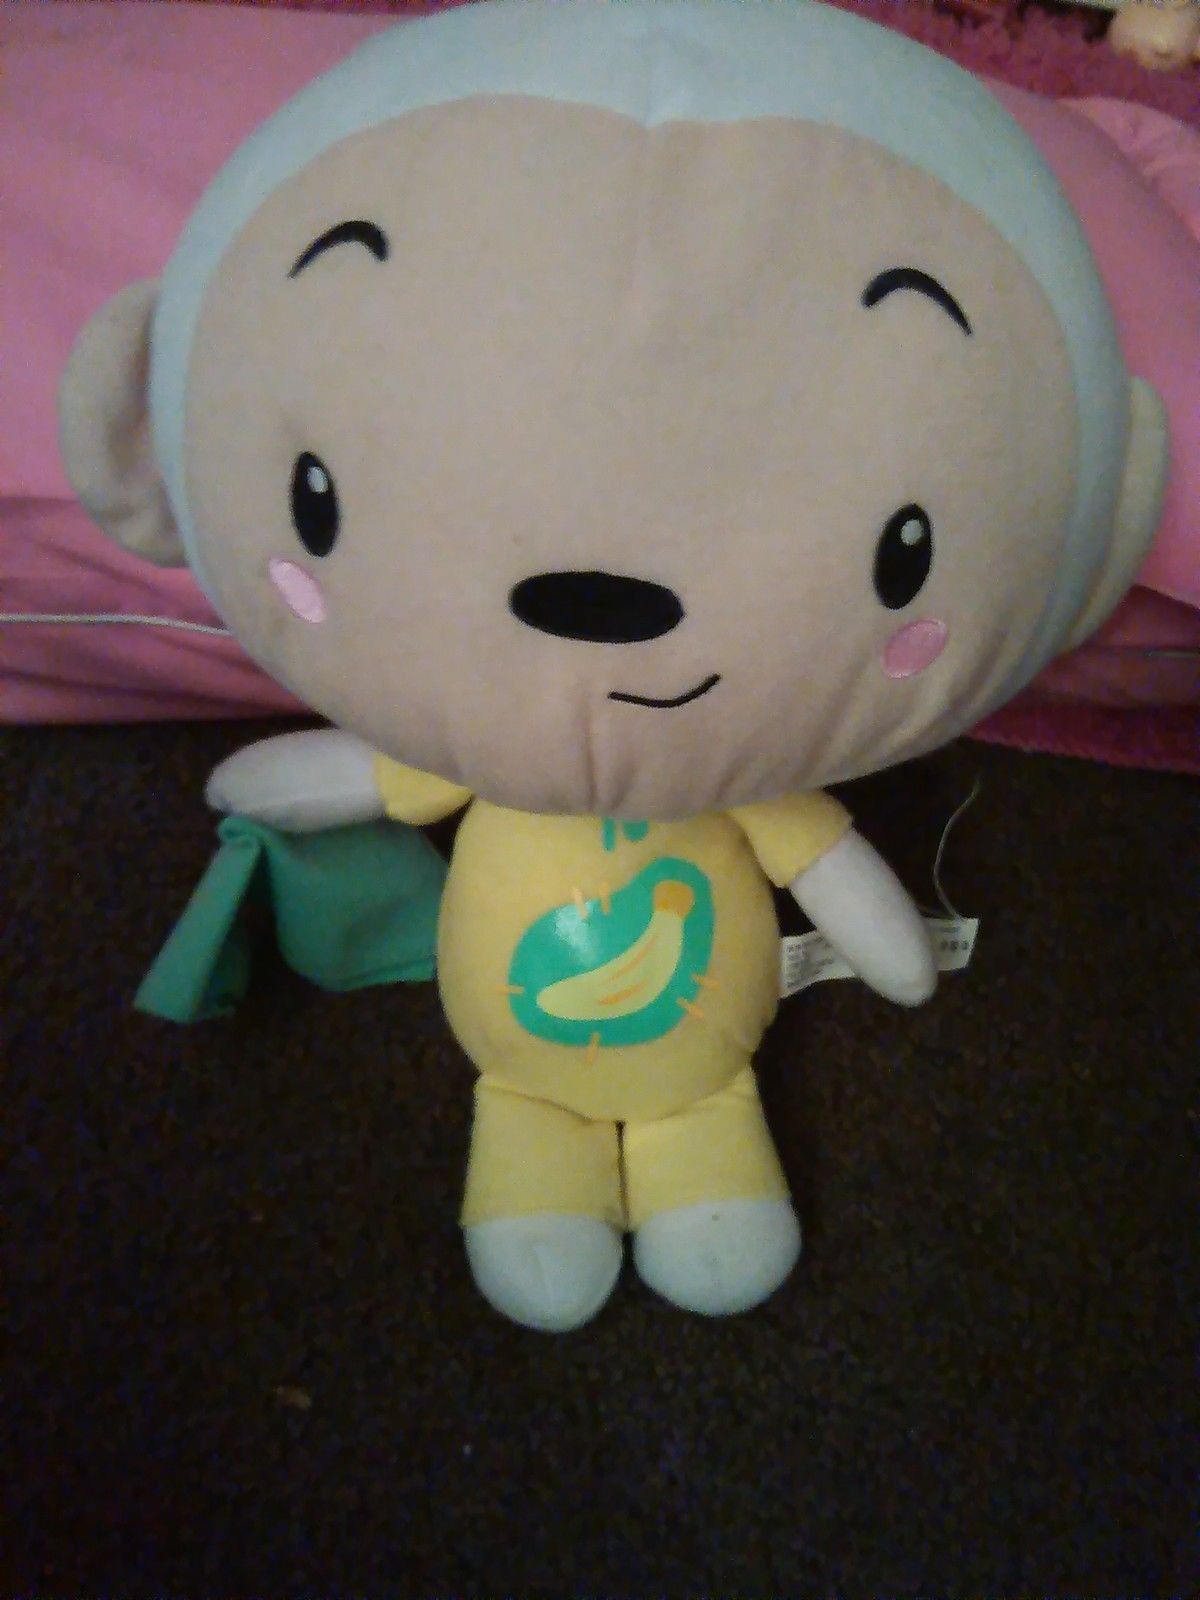 Fisher Price Nick Jr. Ni Hao Kai Lan Sleepytime HoHo Talking Plush ...